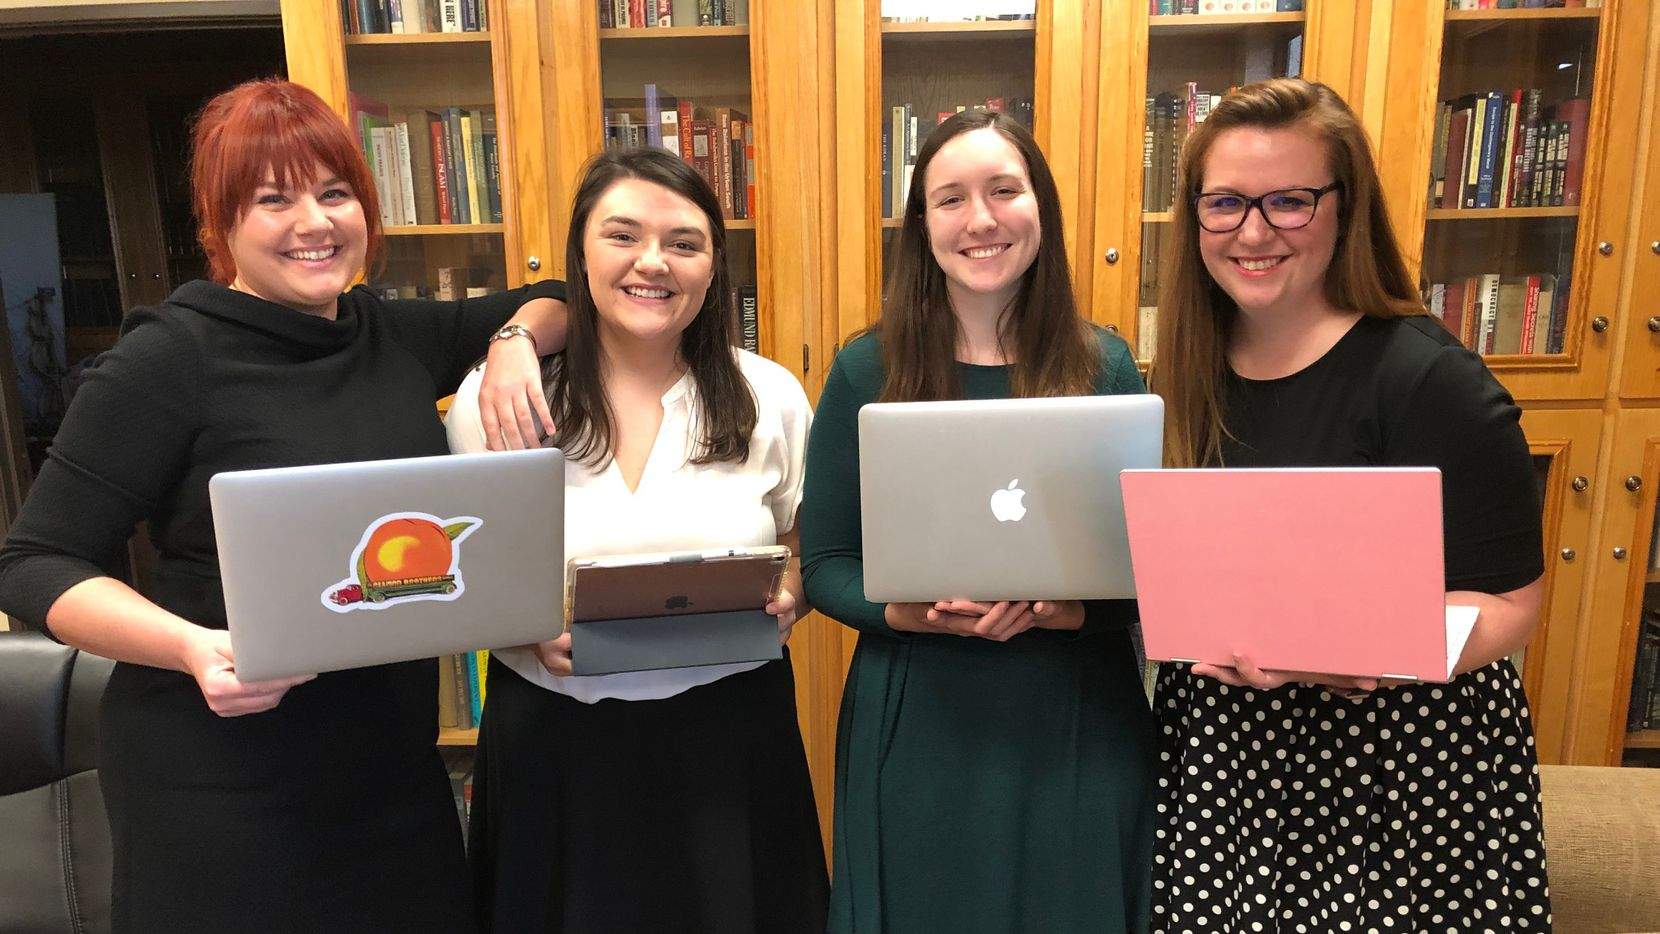 Four UNT history students devoted a year to researching a historic black community in Denton County. Their shocking findings reveal unchecked power for the Denton County Ku Klux Klan a century ago.